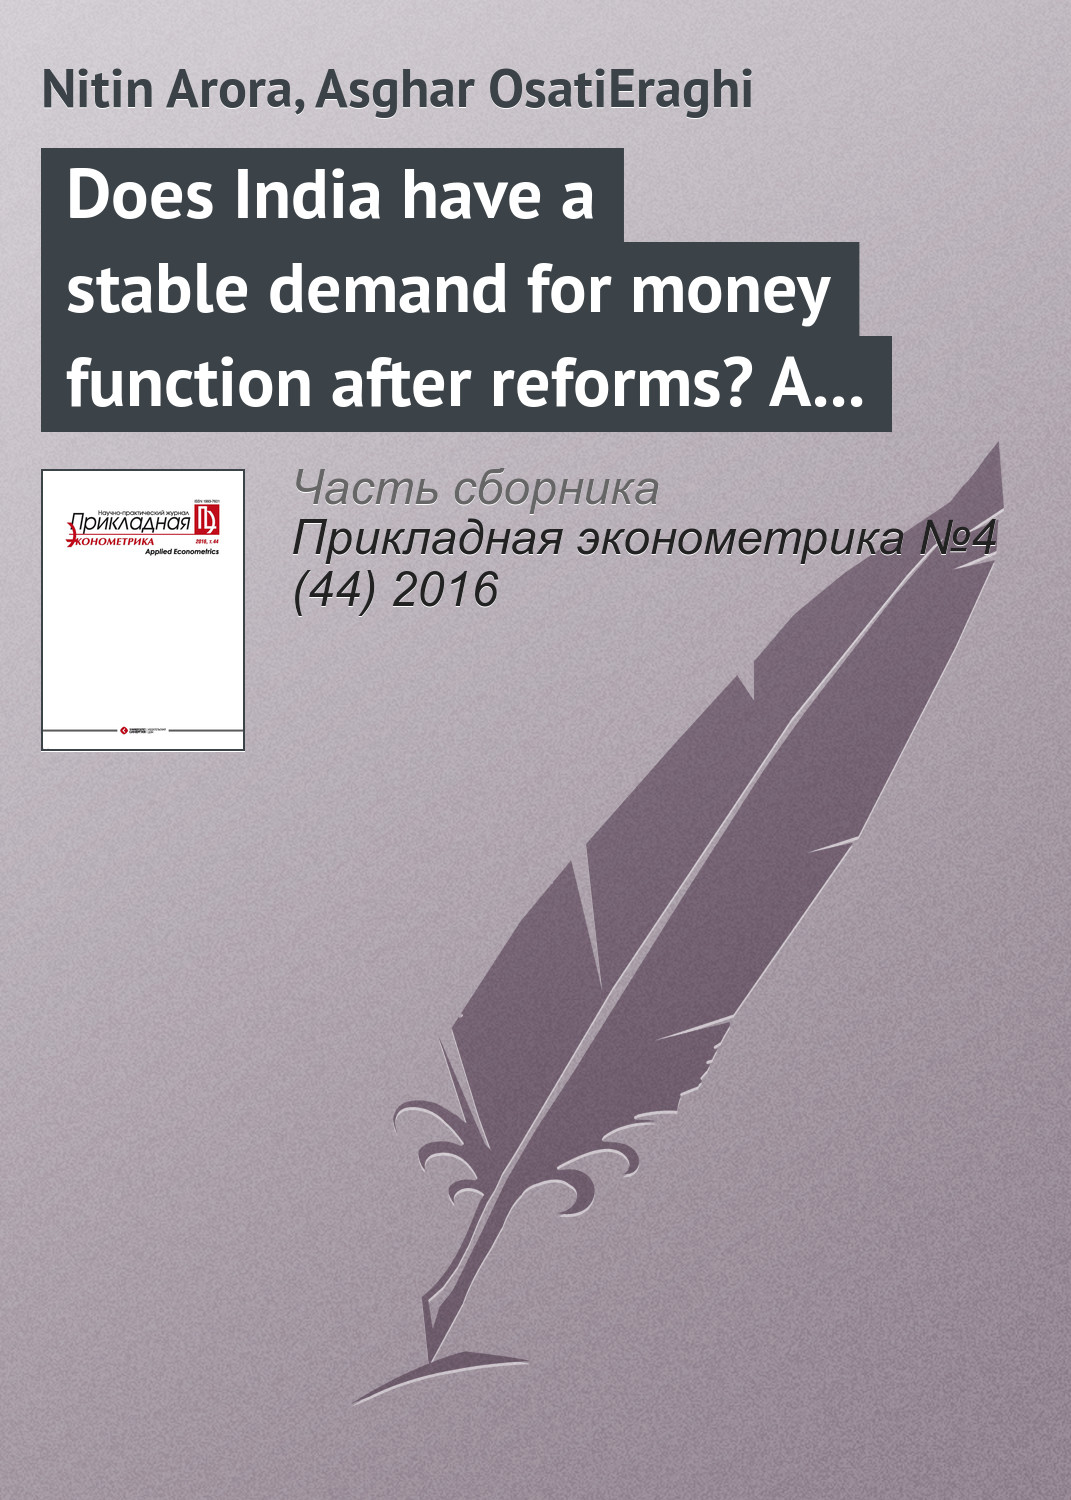 Nitin Arora Does India have a stable demand for money function after reforms? A macroeconometric analysis economic reforms and growth of insurance sector in india